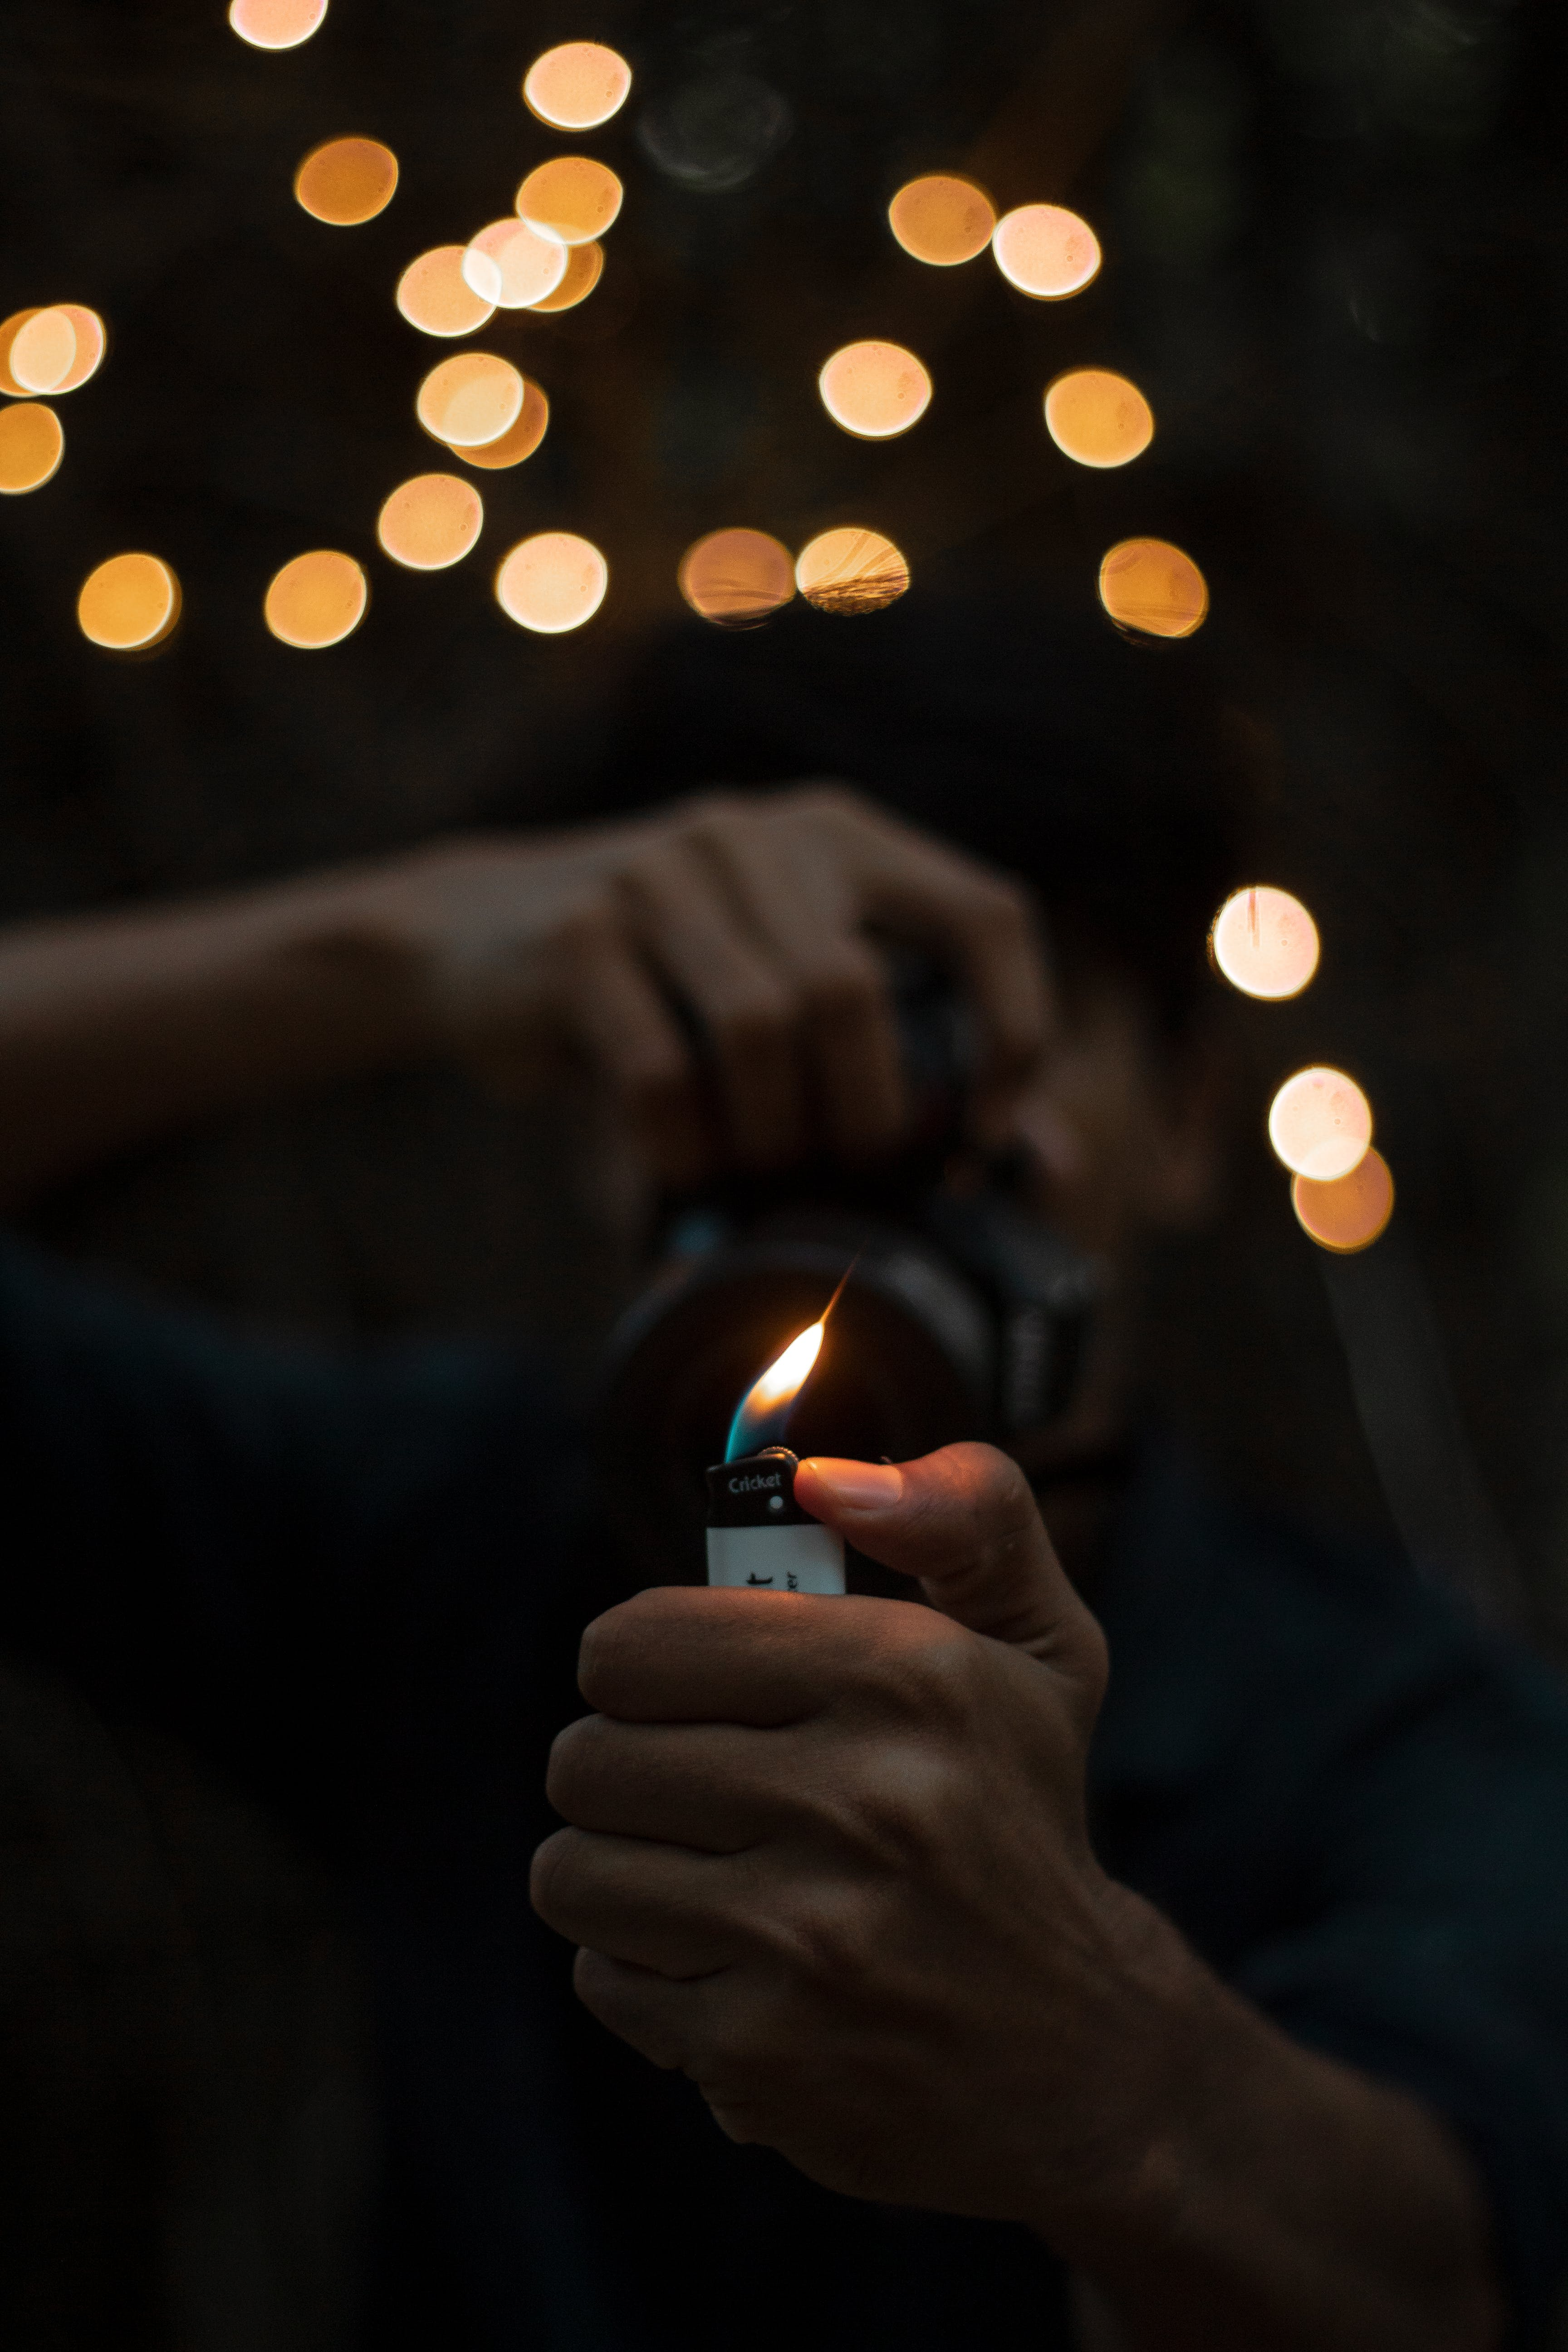 Person Holding Lighted Disposable Lighter